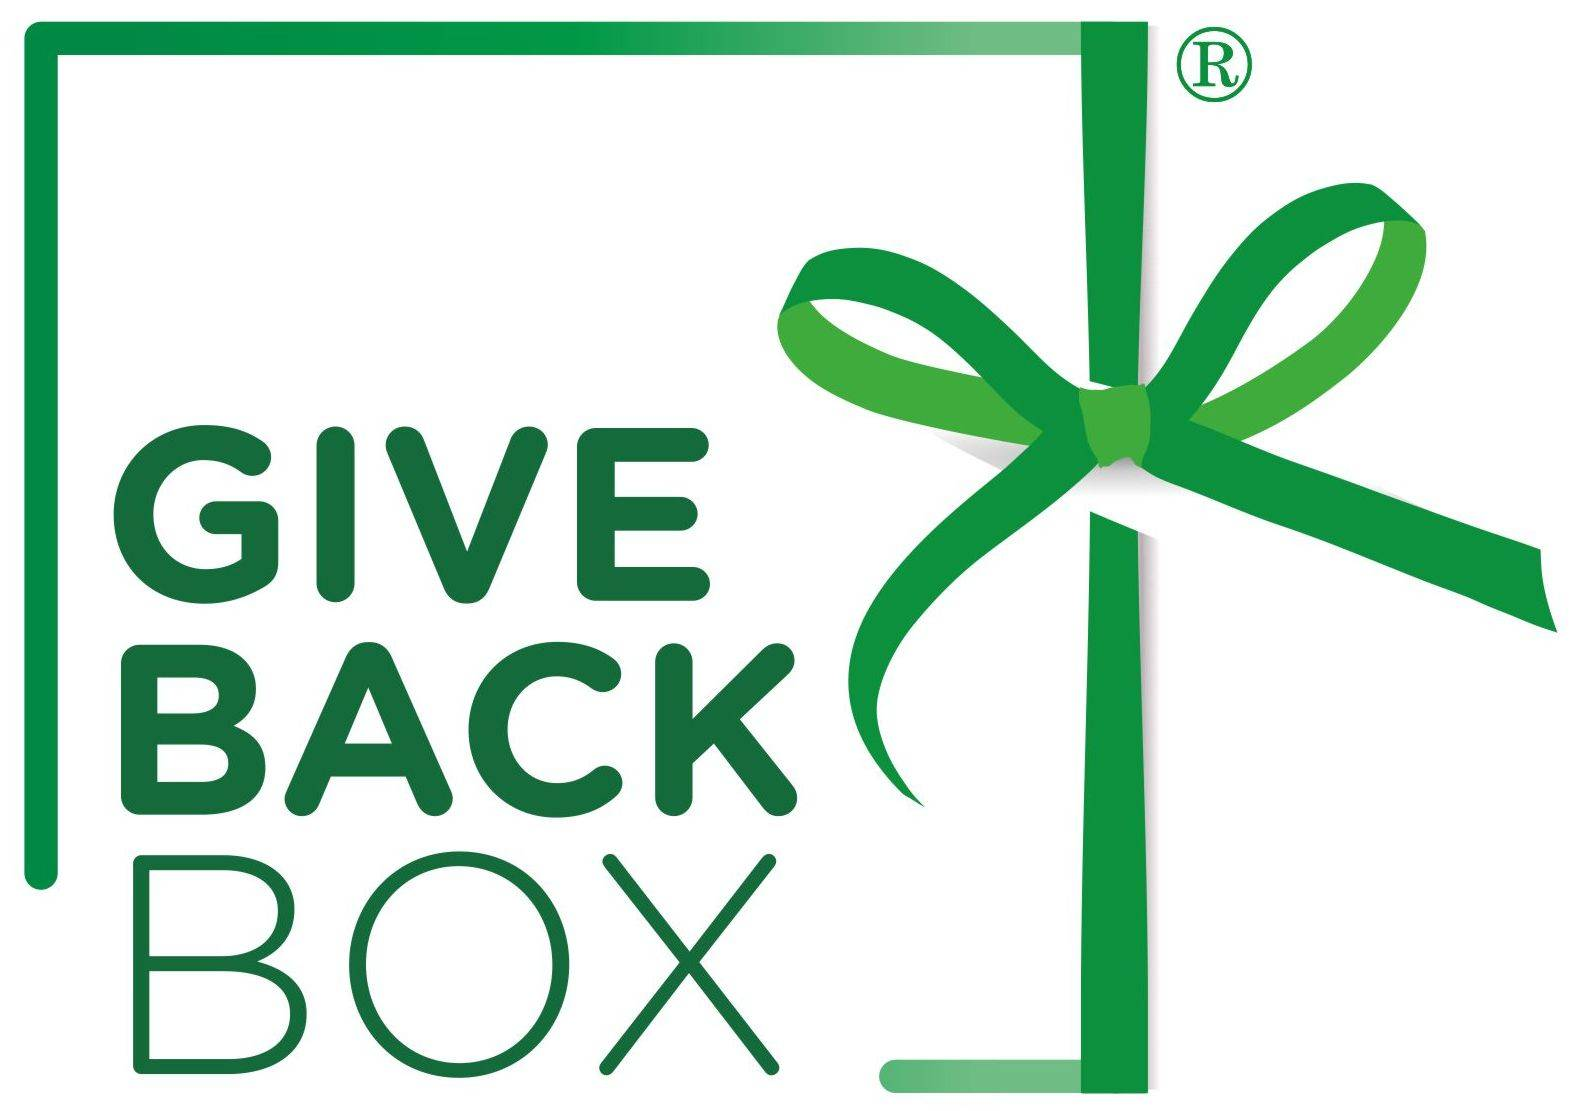 give back box lego